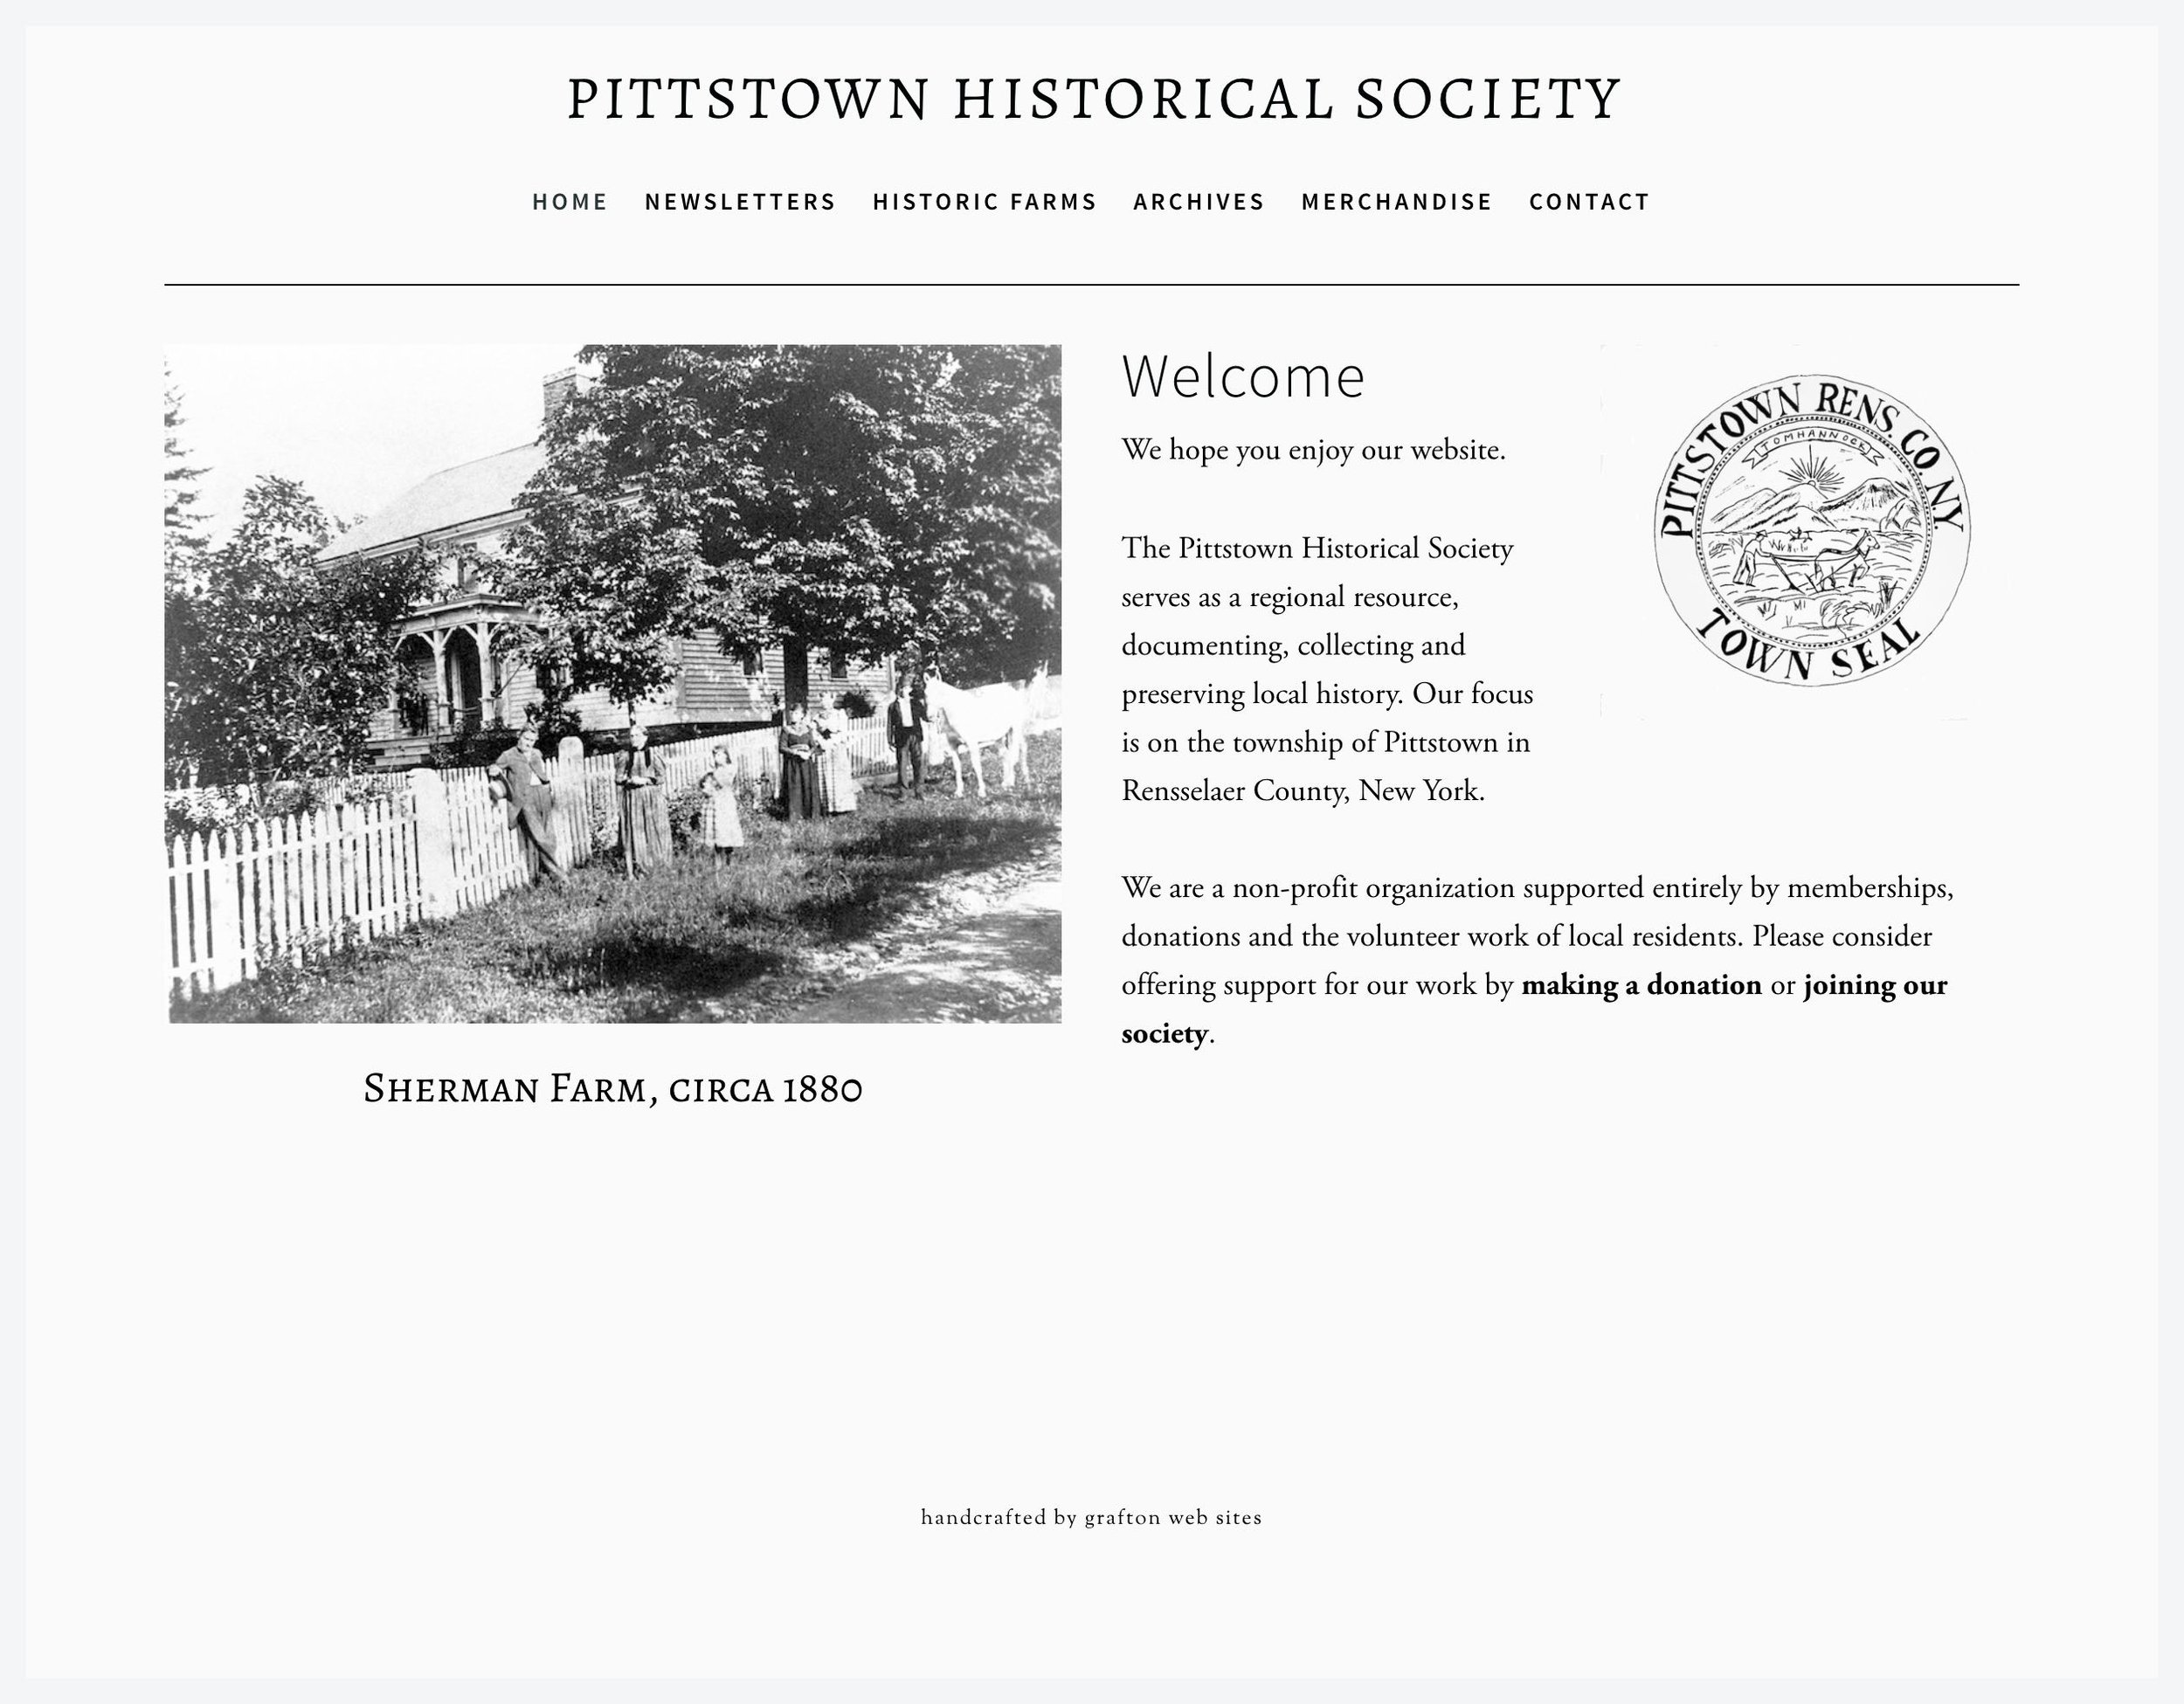 Pittstown Historical Society, Pittstown, NY